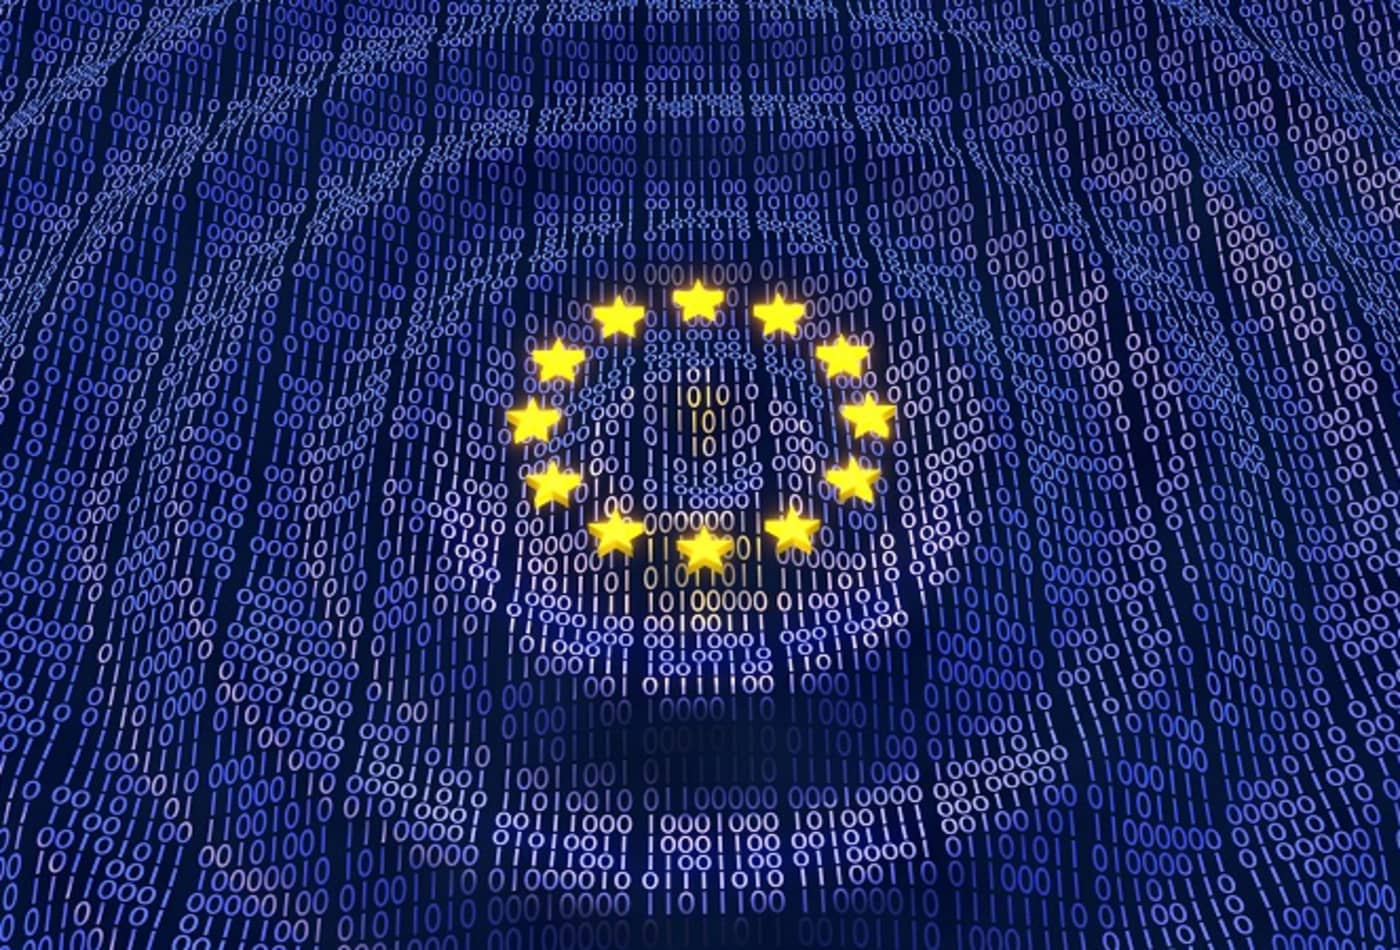 Europe's privacy overhaul has led to $126 million in fines — but regulators are just getting started